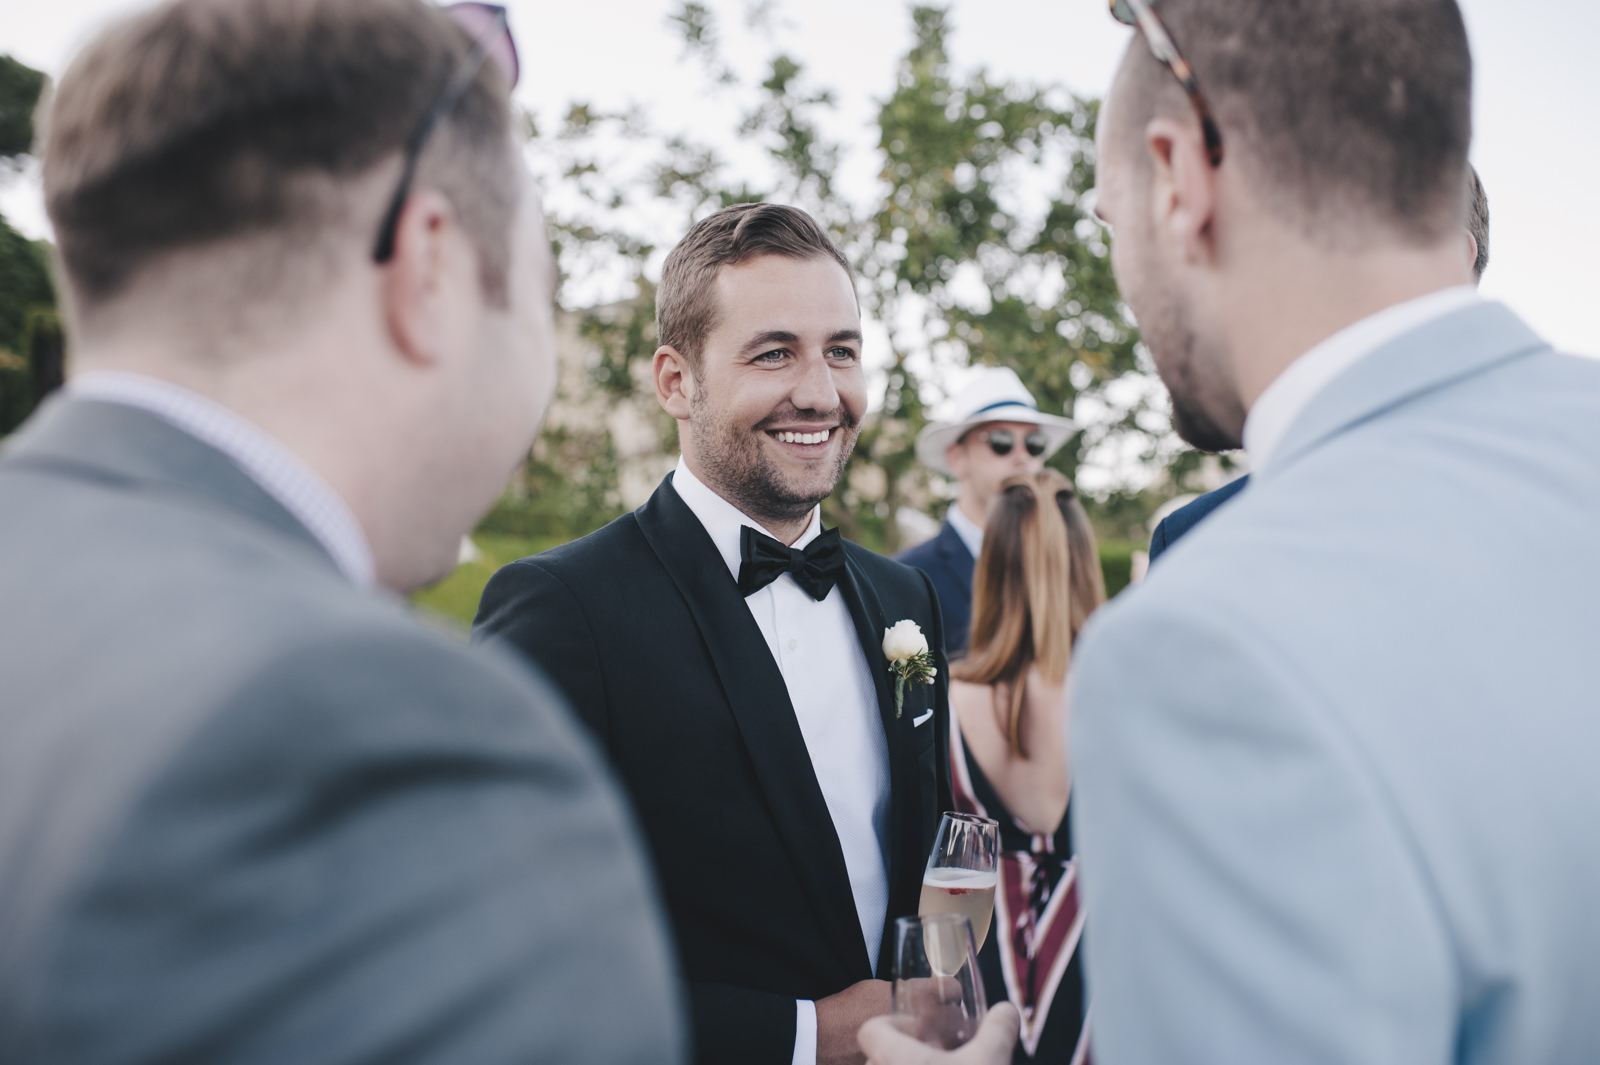 the groom with other guests during the cocktail